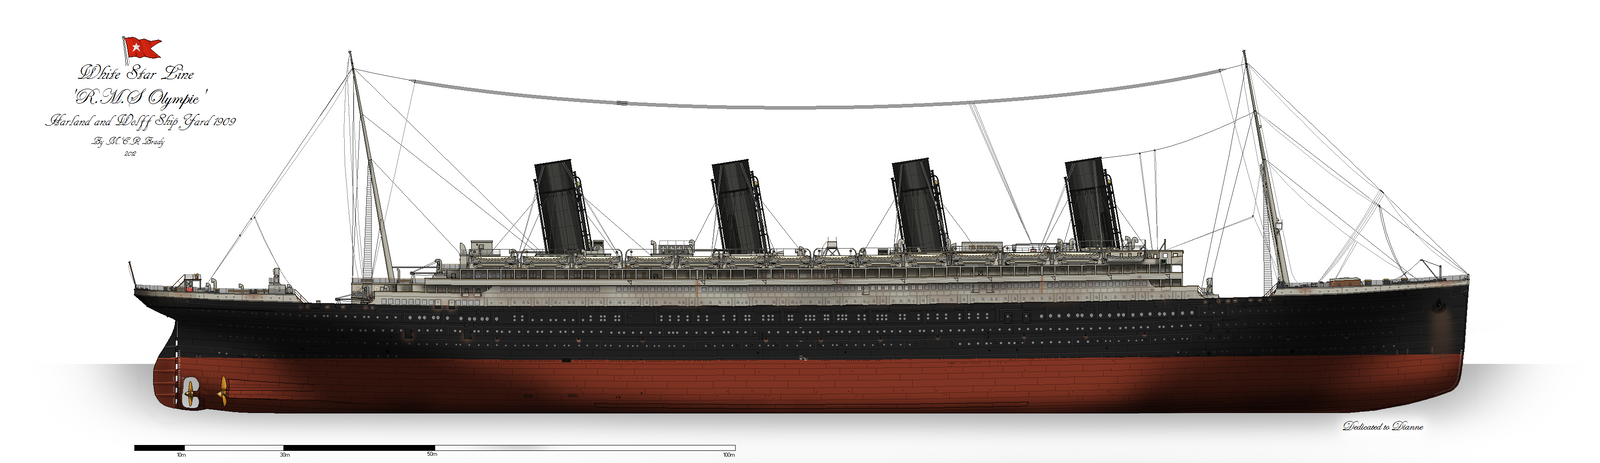 rms_olympic__profile__1914__by_alotef_d6e0fiv-fullview